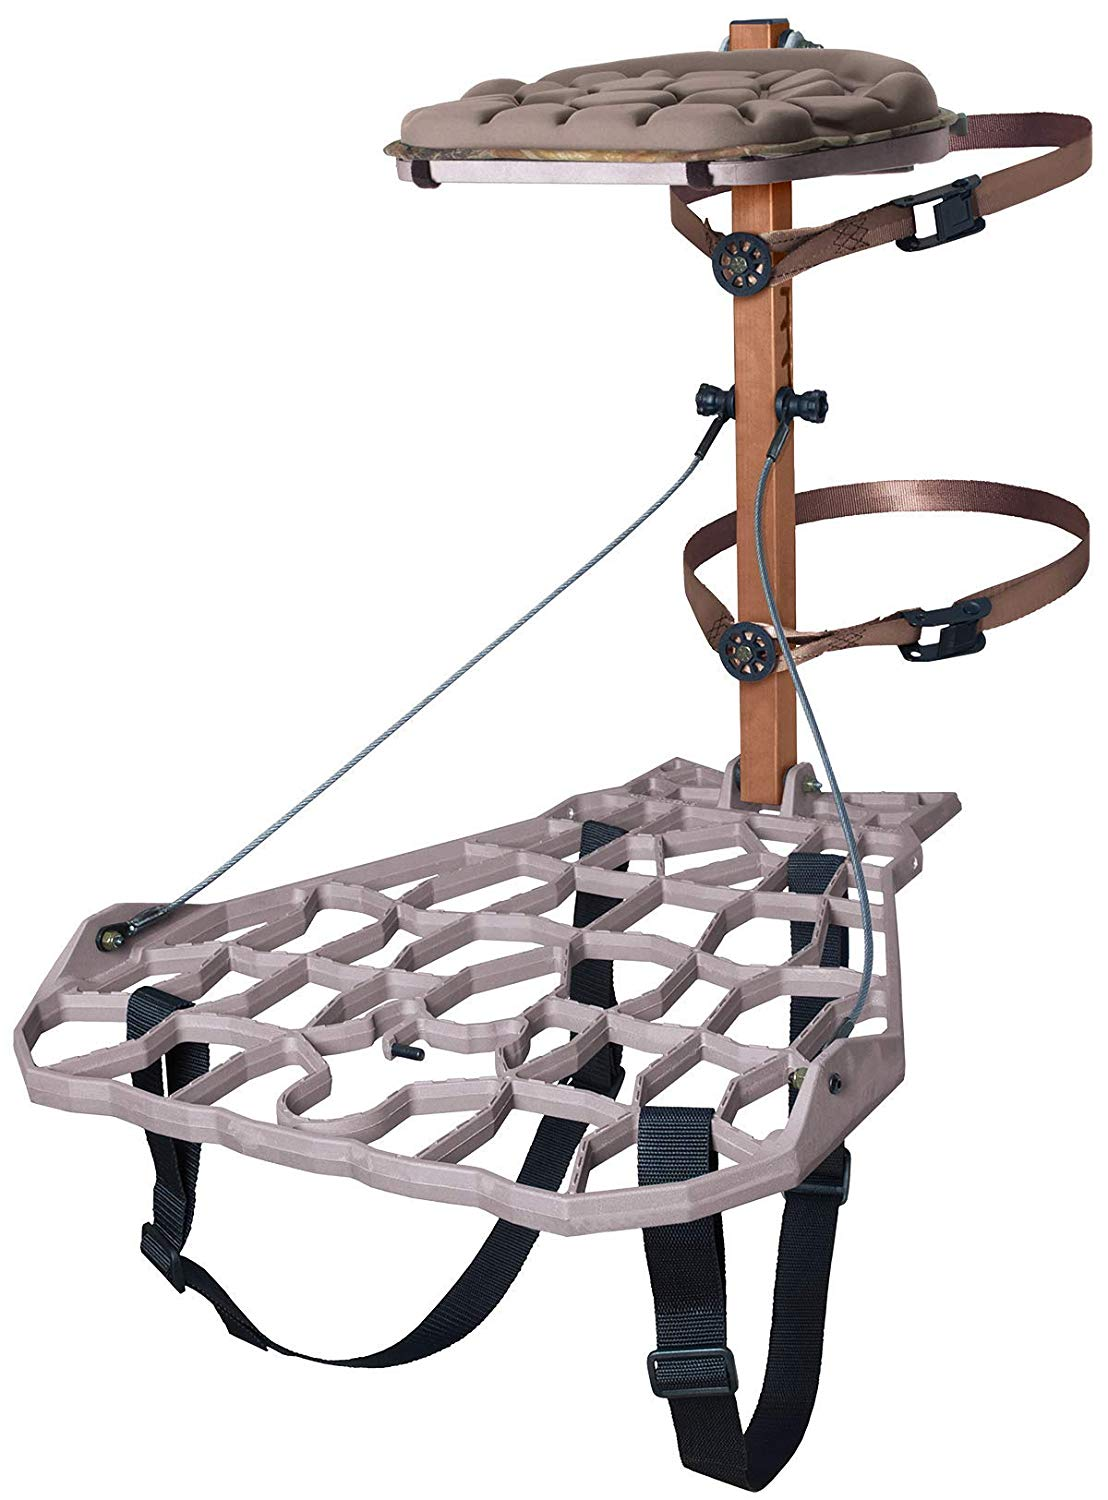 Top 10 Best Climbing Tree Stand 2020 Reviews For The Money 4